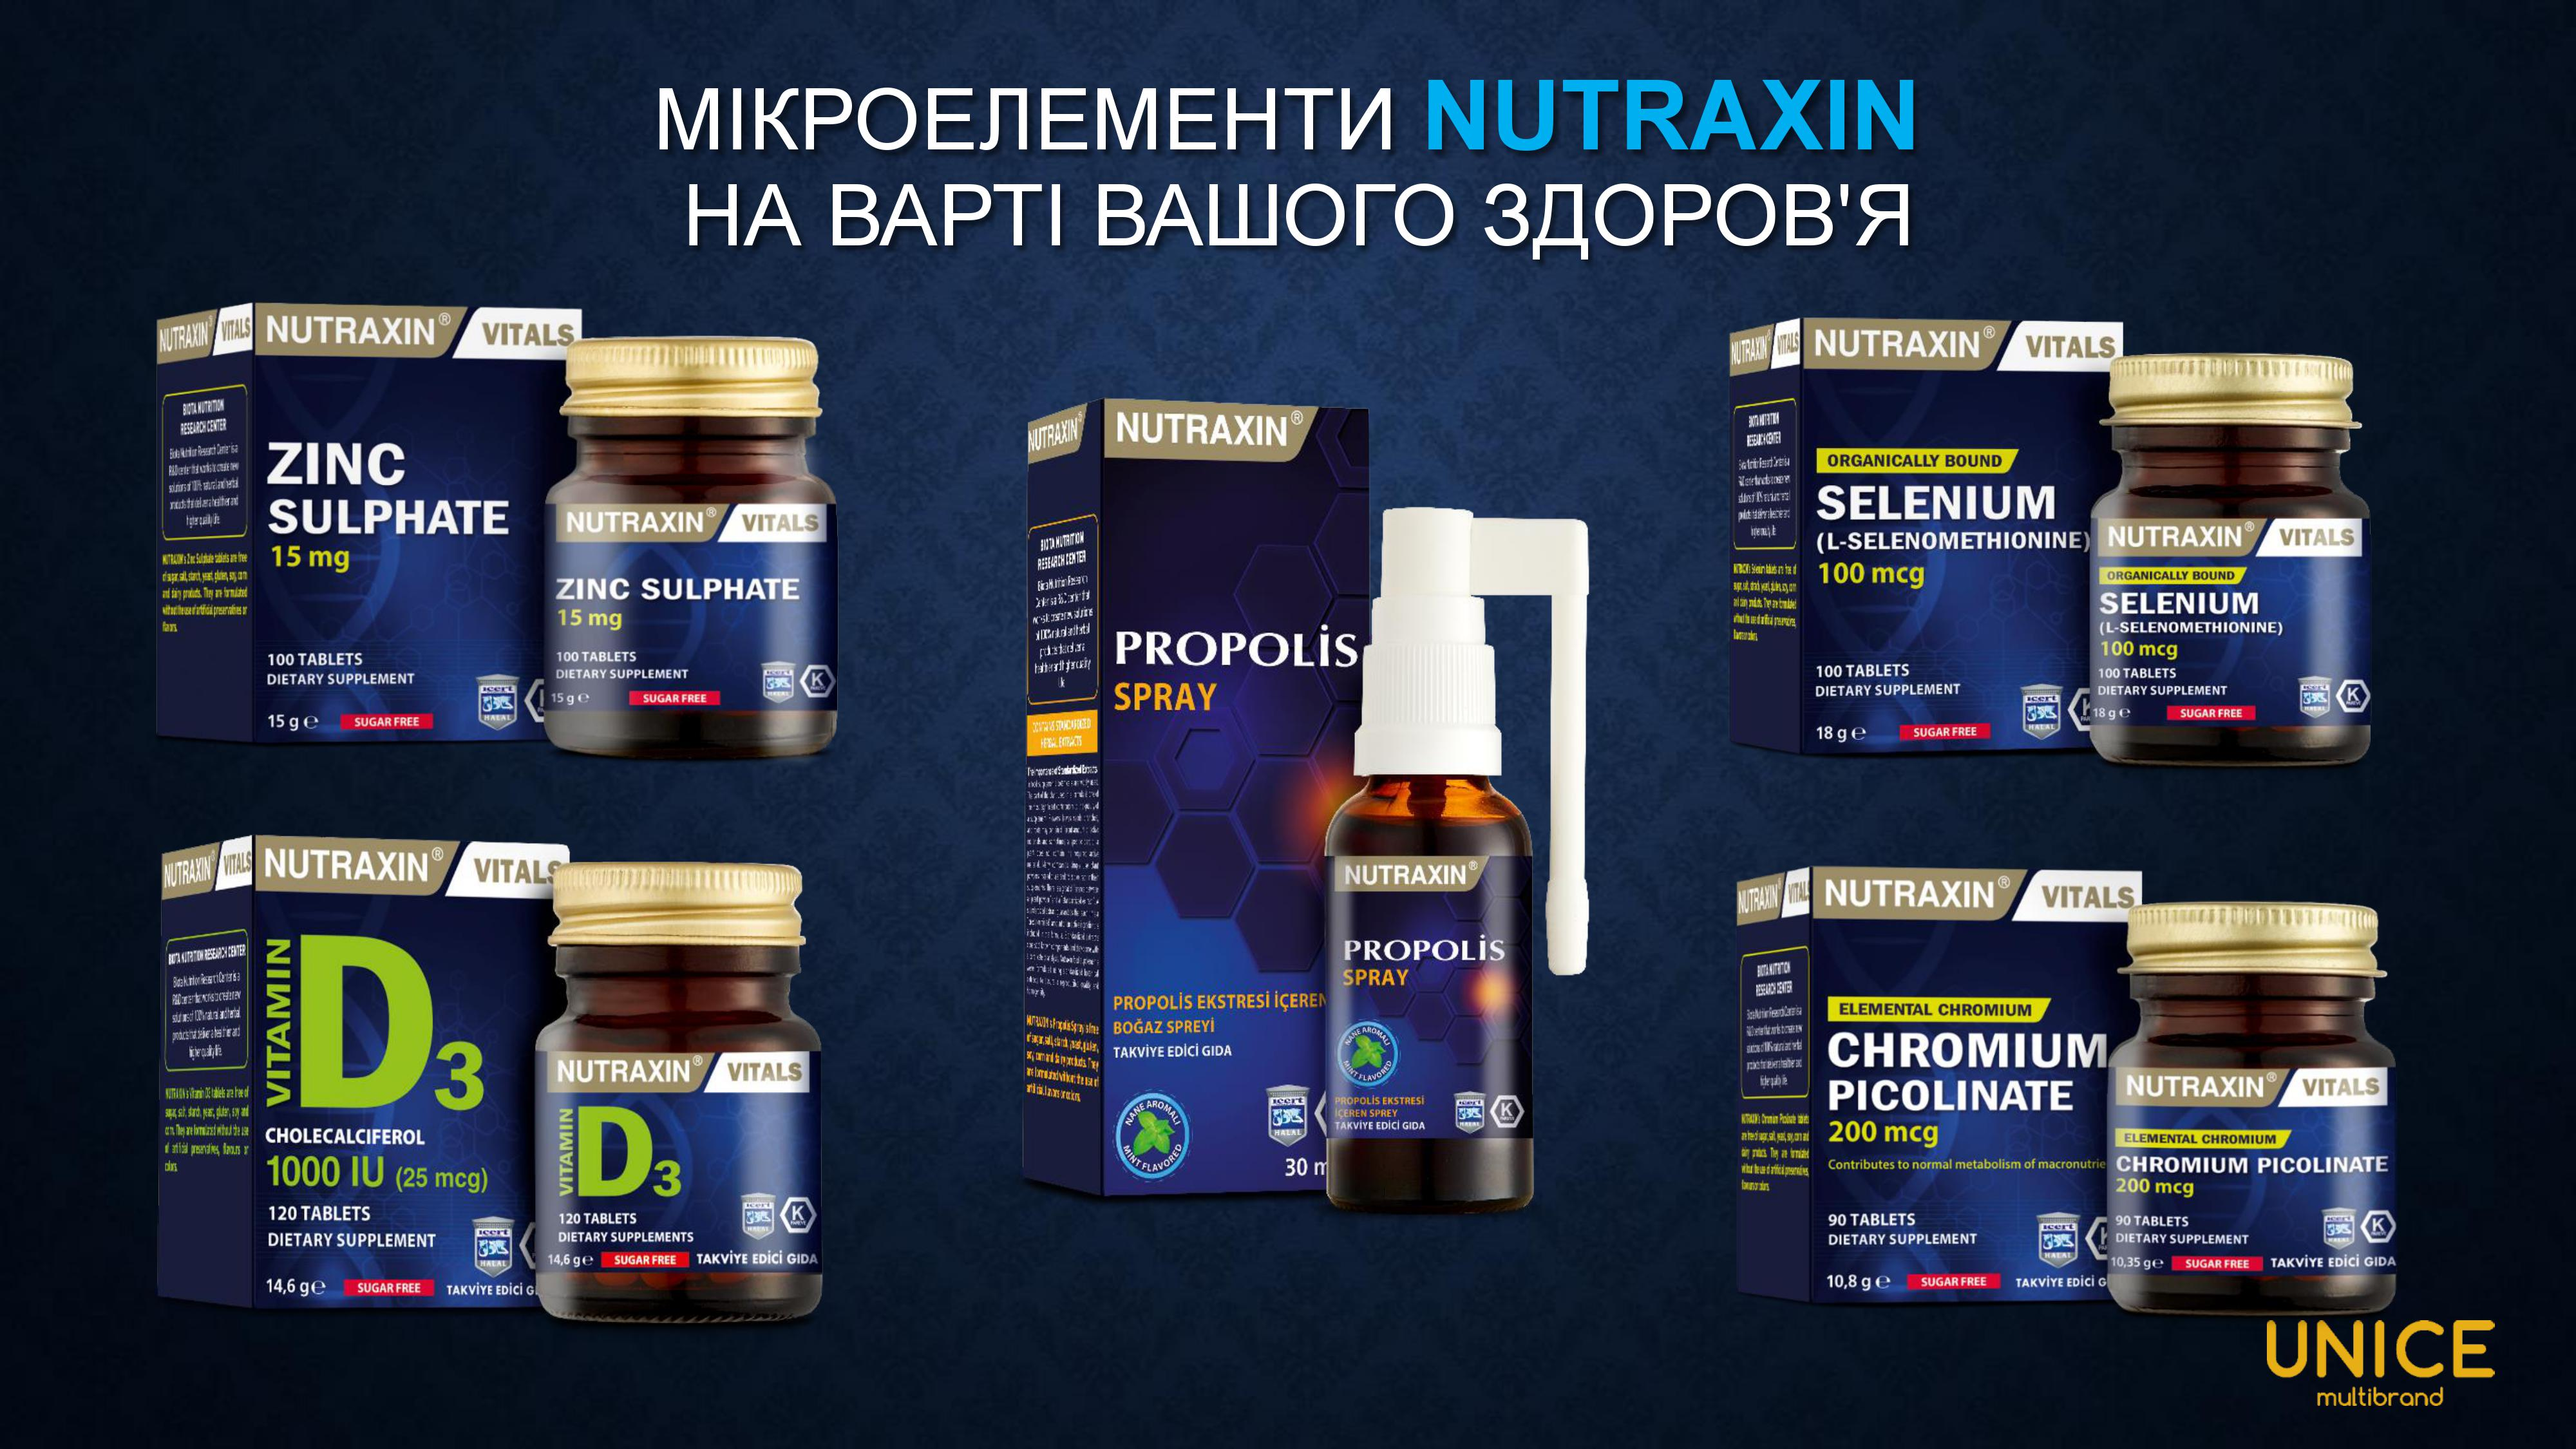 микроэлементы nutraxin